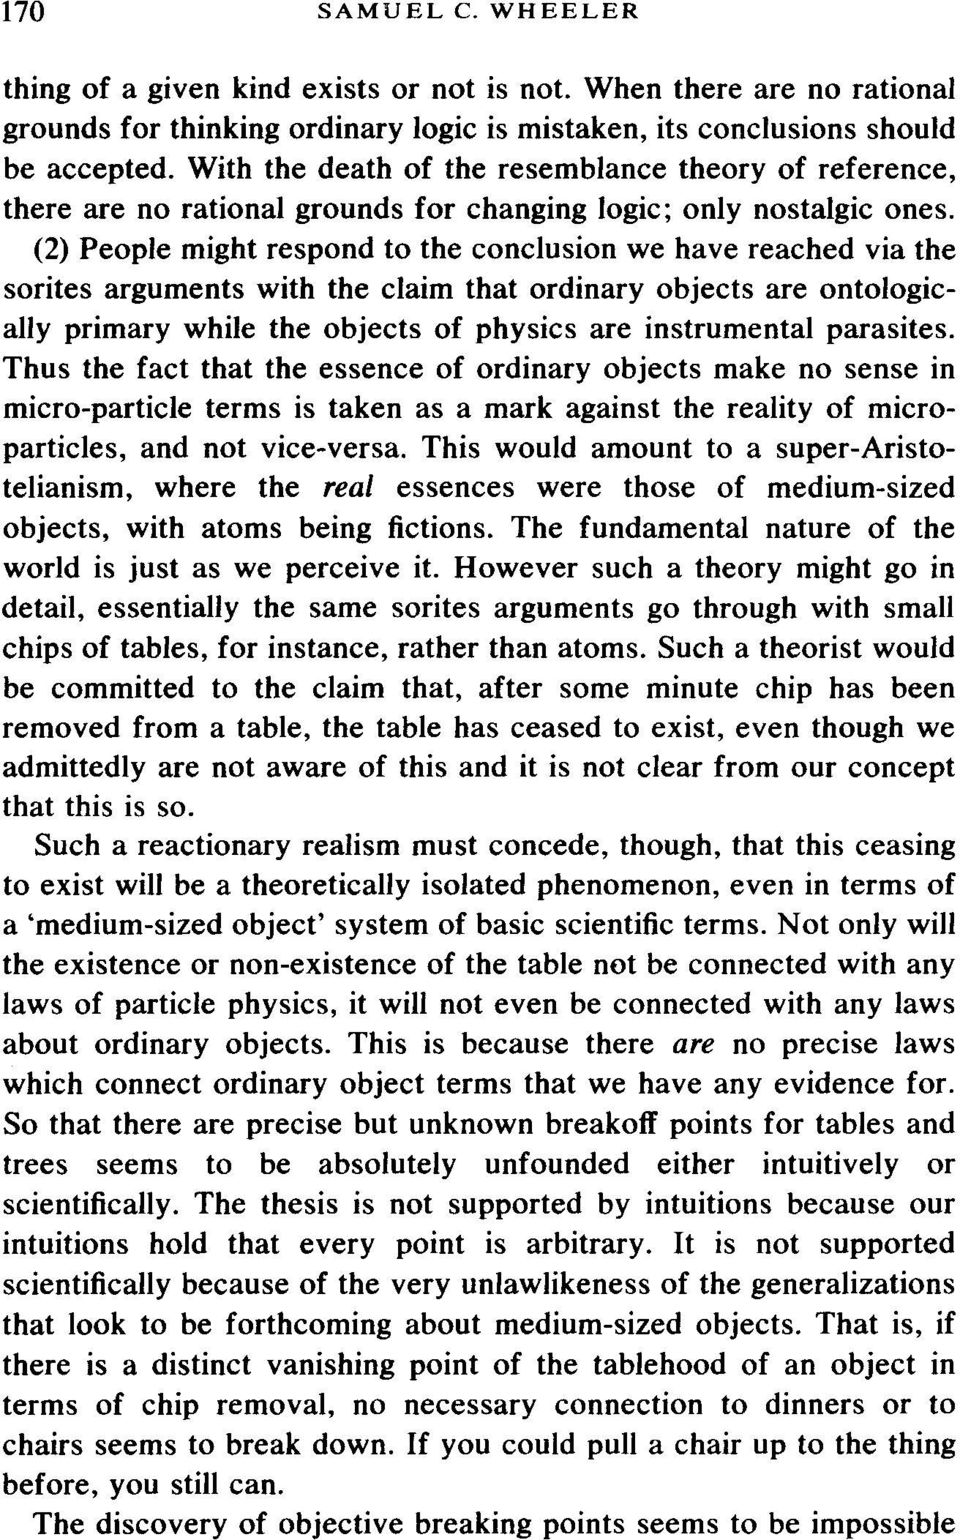 (2) People might respond to the conclusion we have reached via the sorites arguments with the claim that ordinary objects are ontologic ally primary while the objects of physics are instrumental